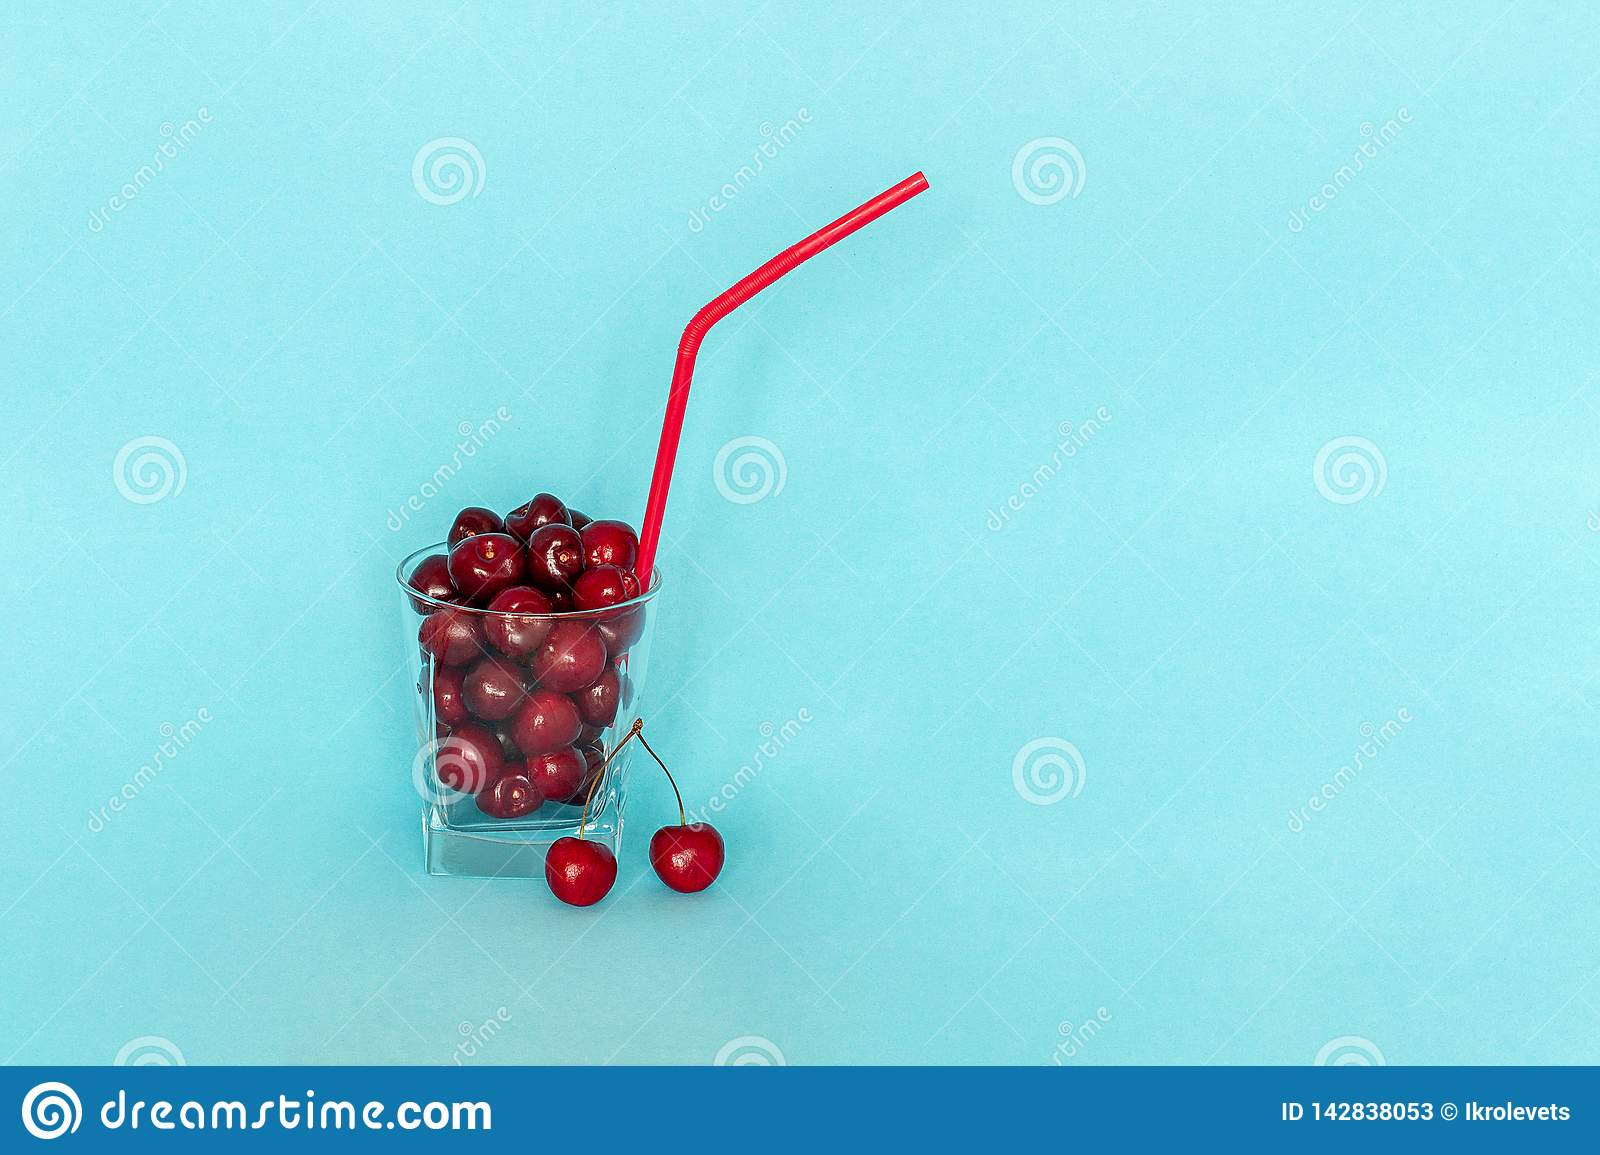 Red ripe sweet cherry in glass with straw on blue background. Concept of fresh natural juice, smoothies, healthy eating or diet